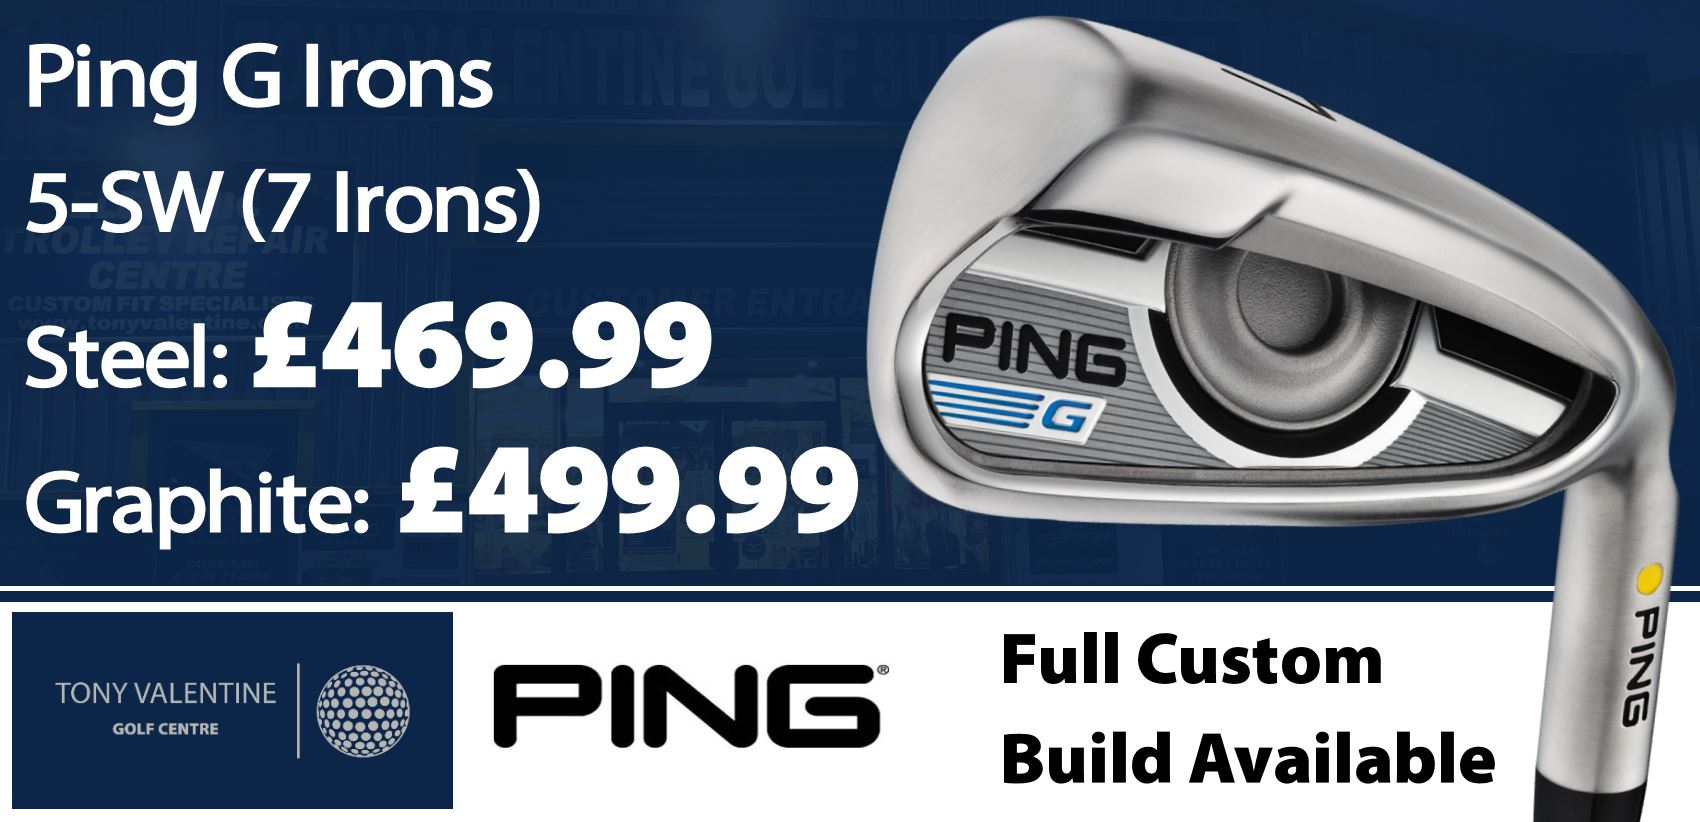 Ping G Irons - Custom Fit